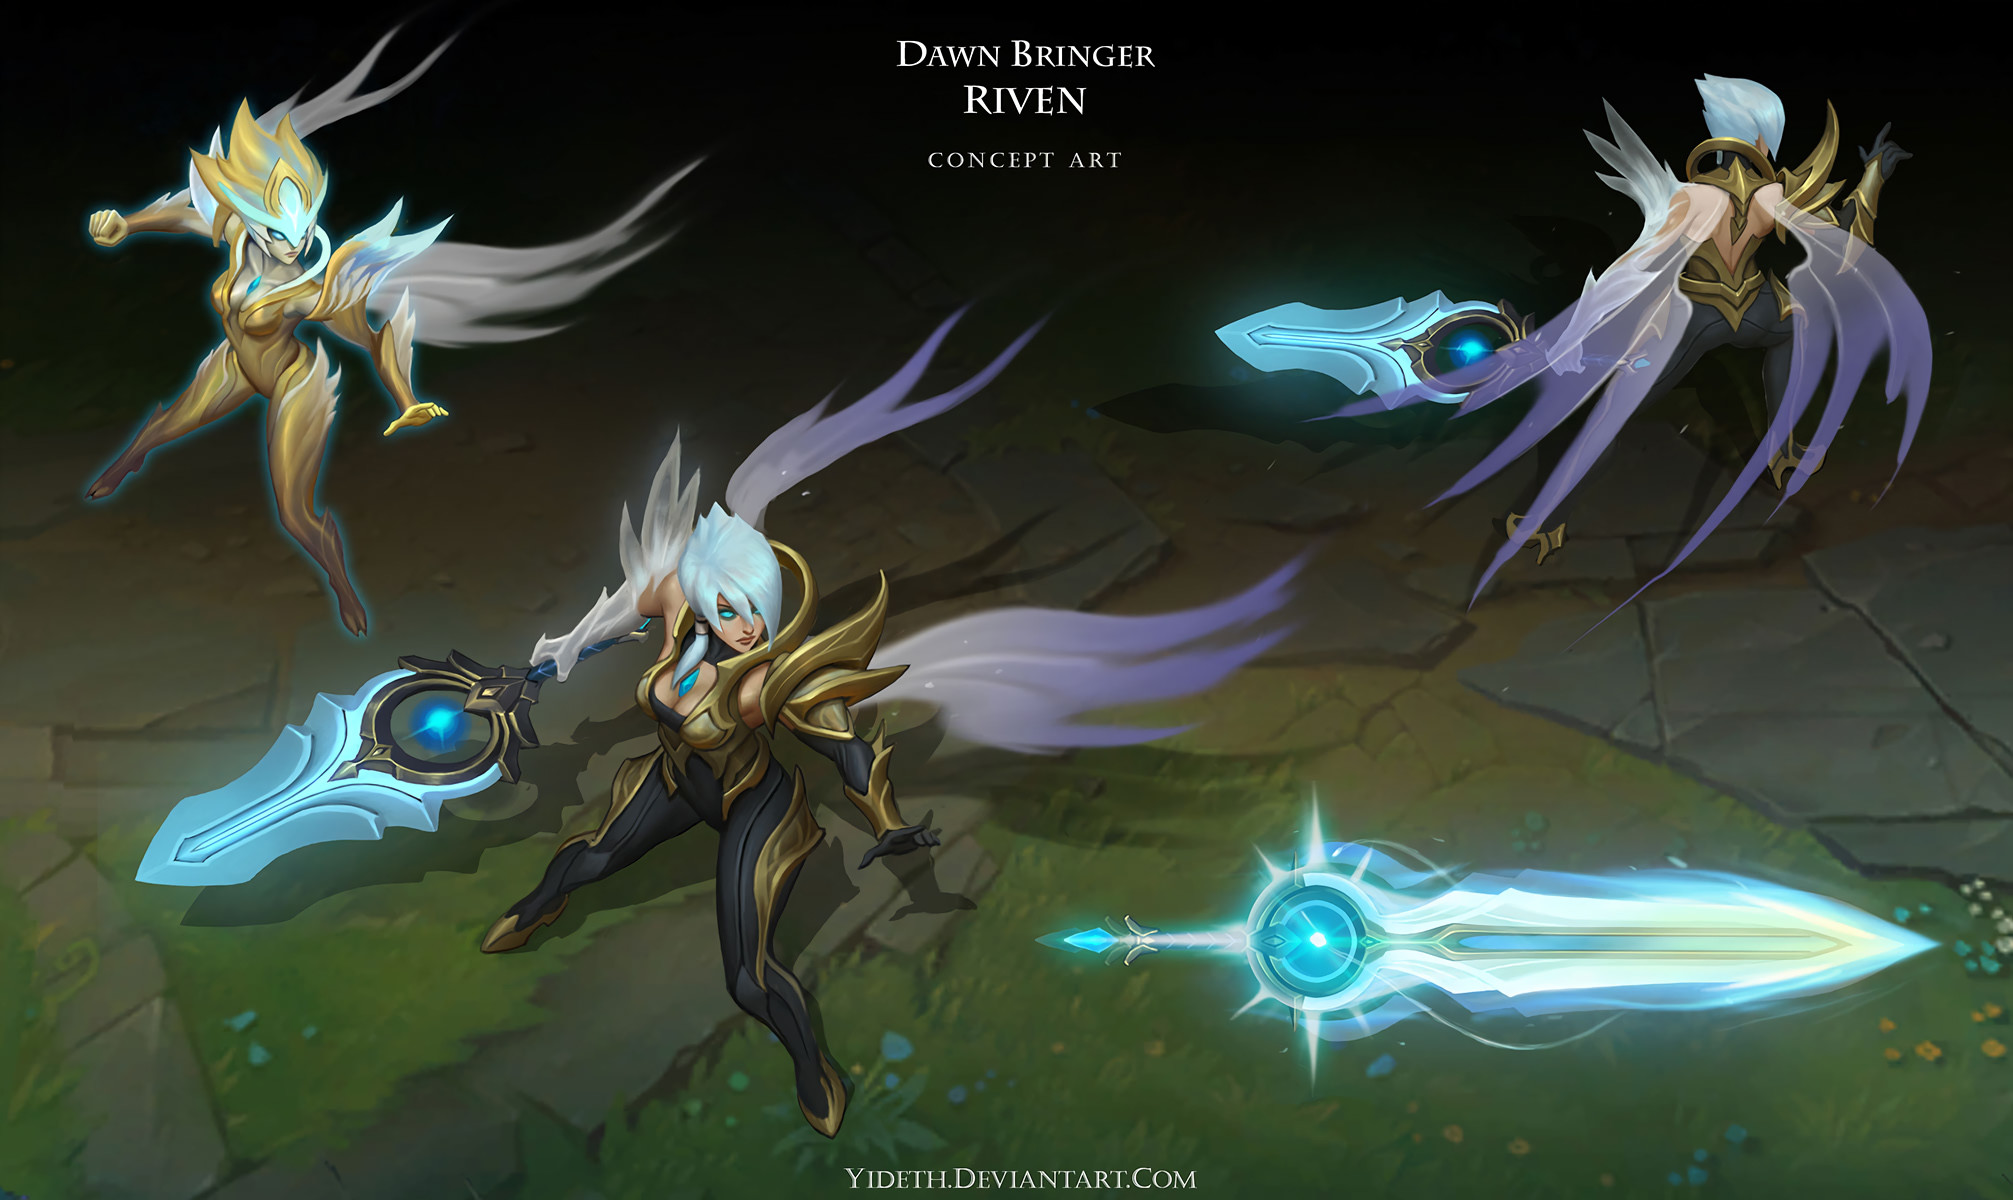 2013x1200 Dawnbringer Riven Concept by yideth HD Wallpaper Background Official Art  Artwork League of Legends lol